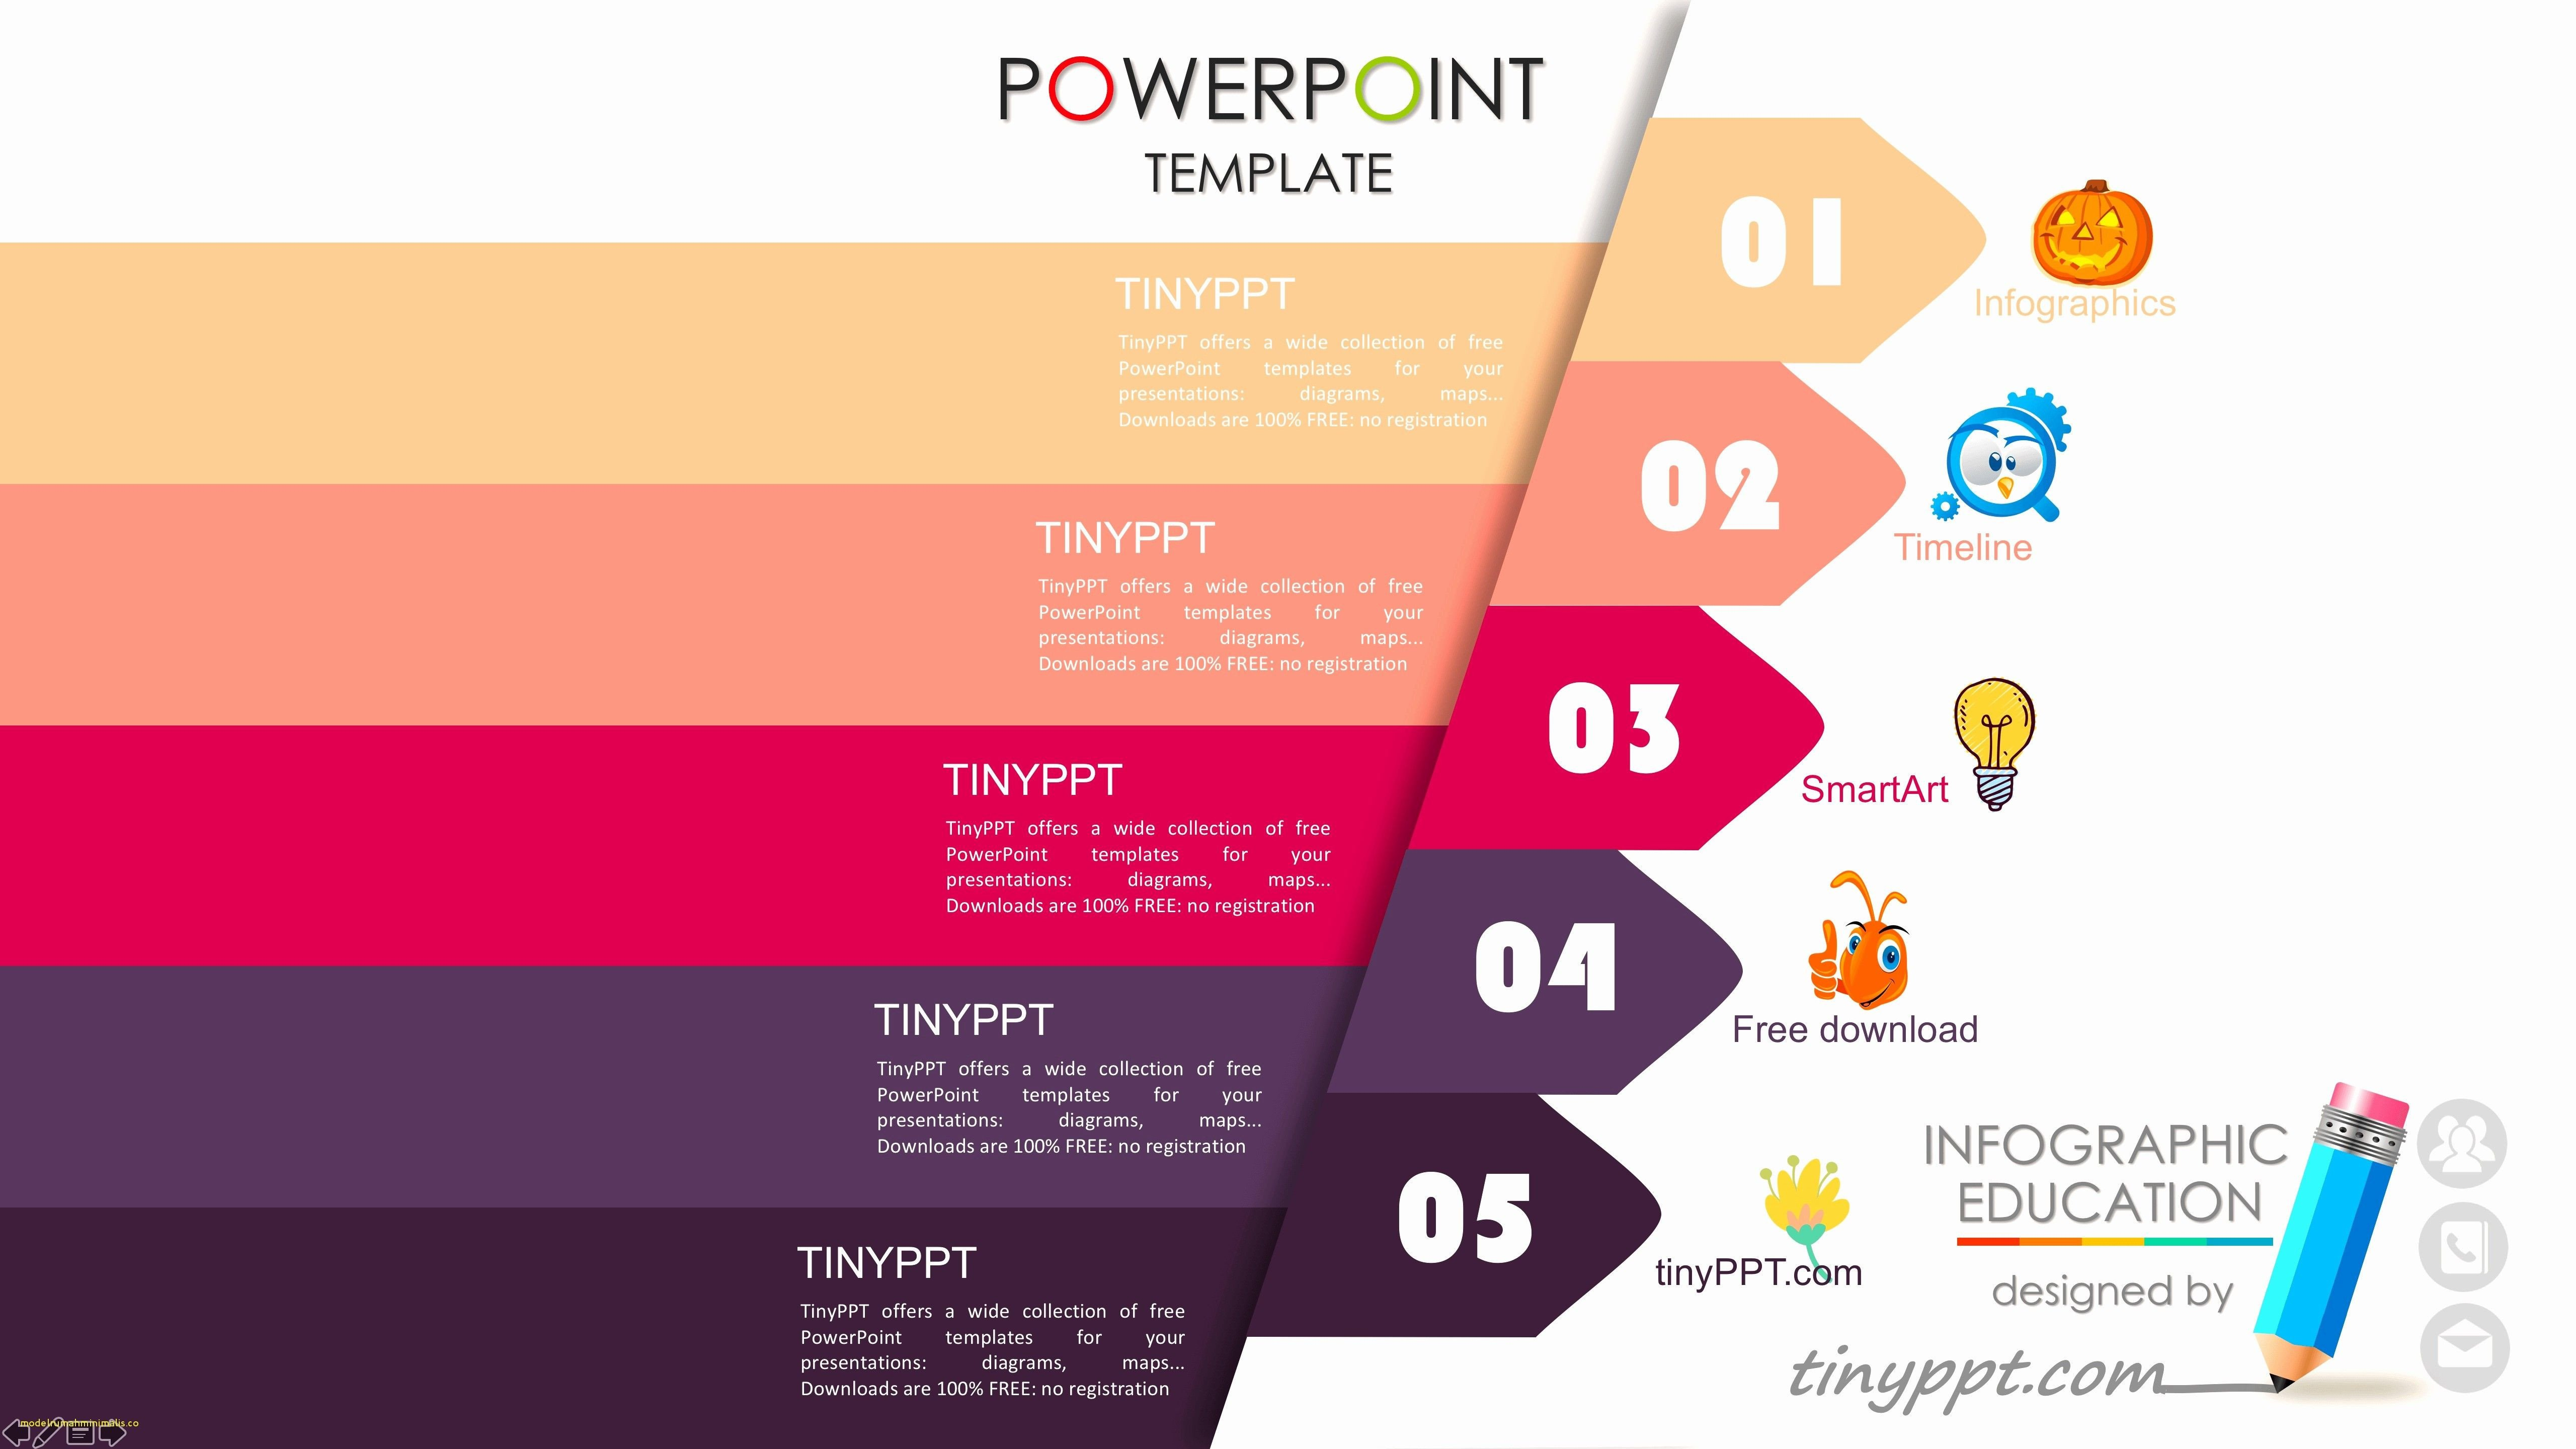 Free Power Point Templates Lovely Awesome Powerpoint Templates